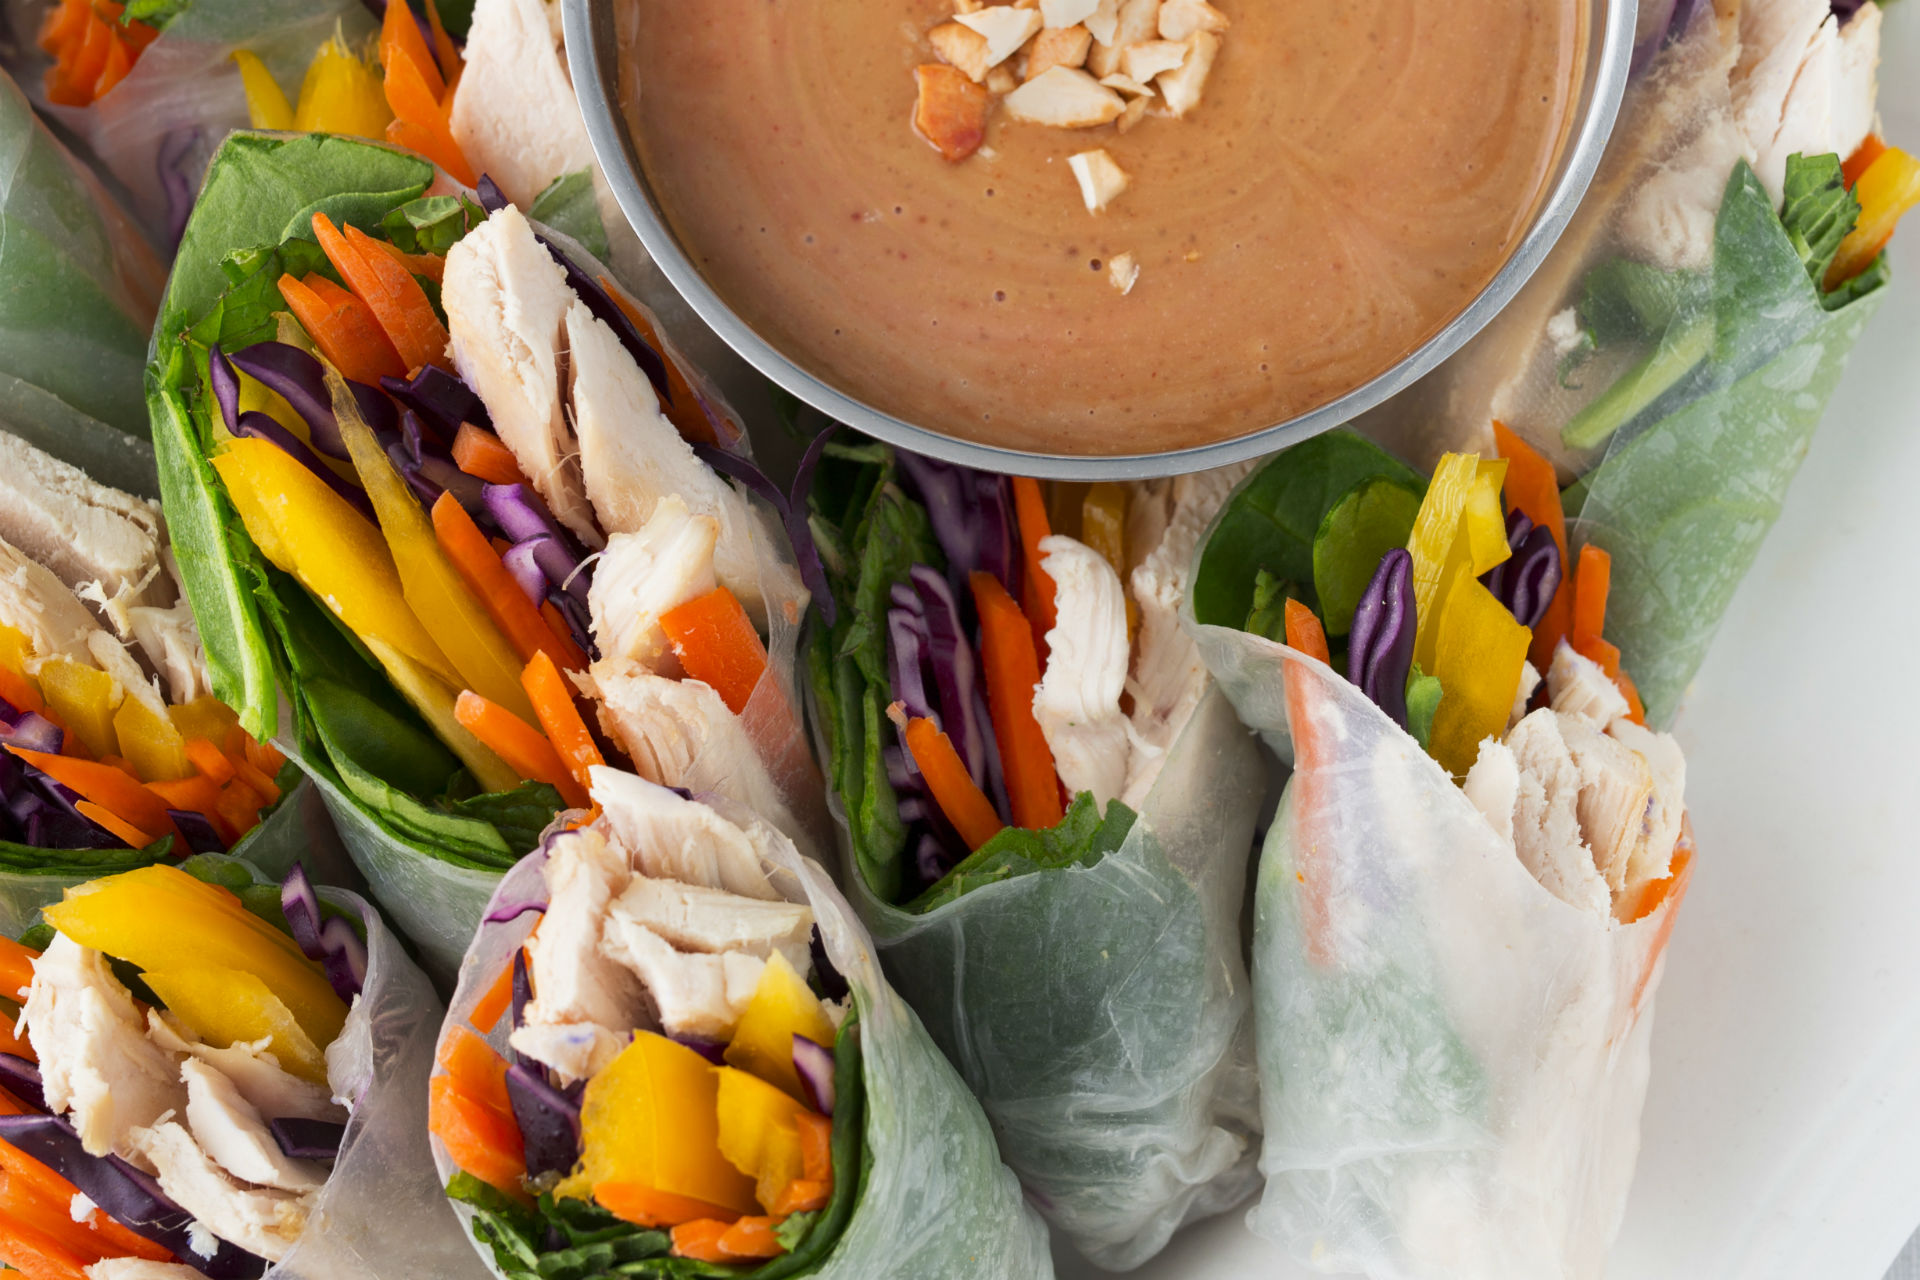 fresh rolls with chicken and veggies and a peanut dipping sauce